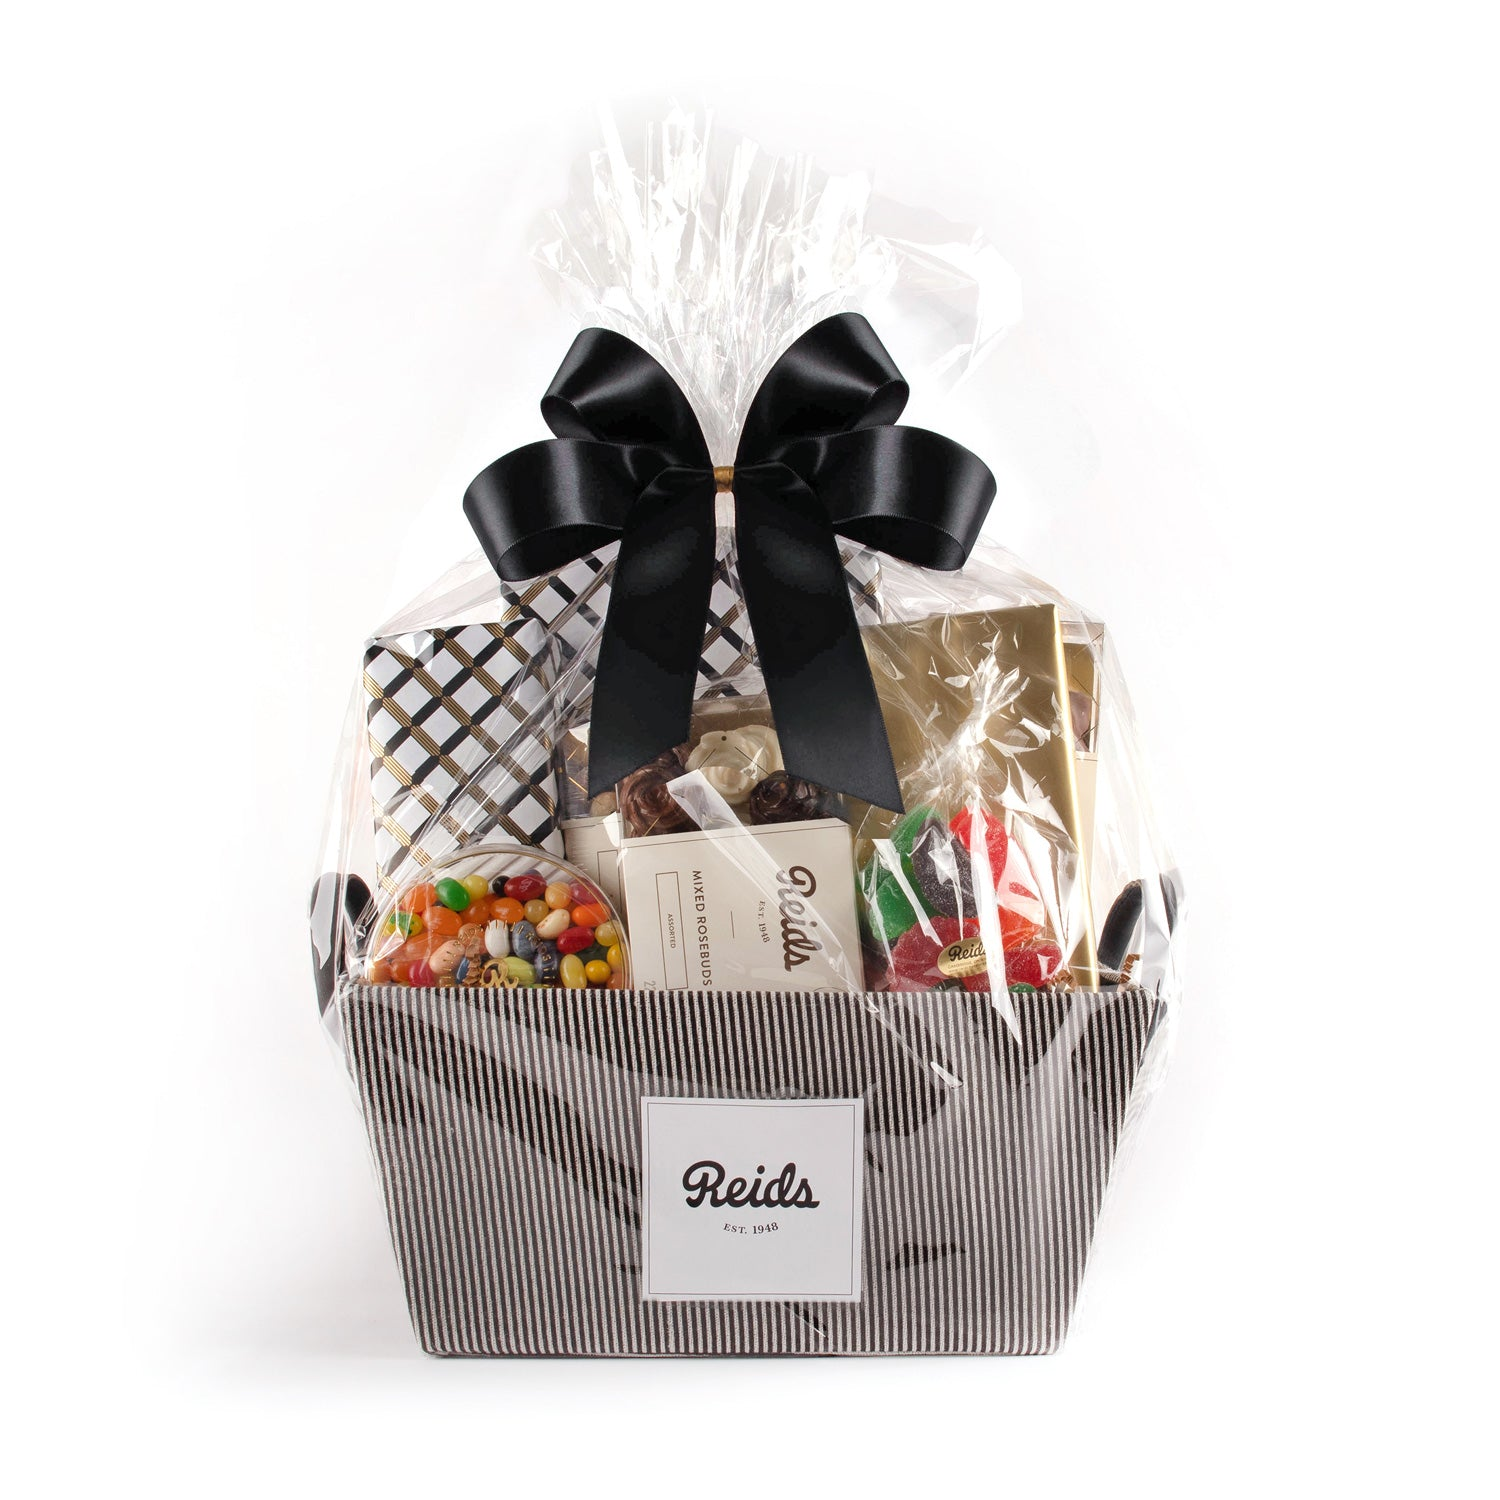 The large basket comes in a black and white pinstriped basket wrapped in cellophane and tied with a black stain bow